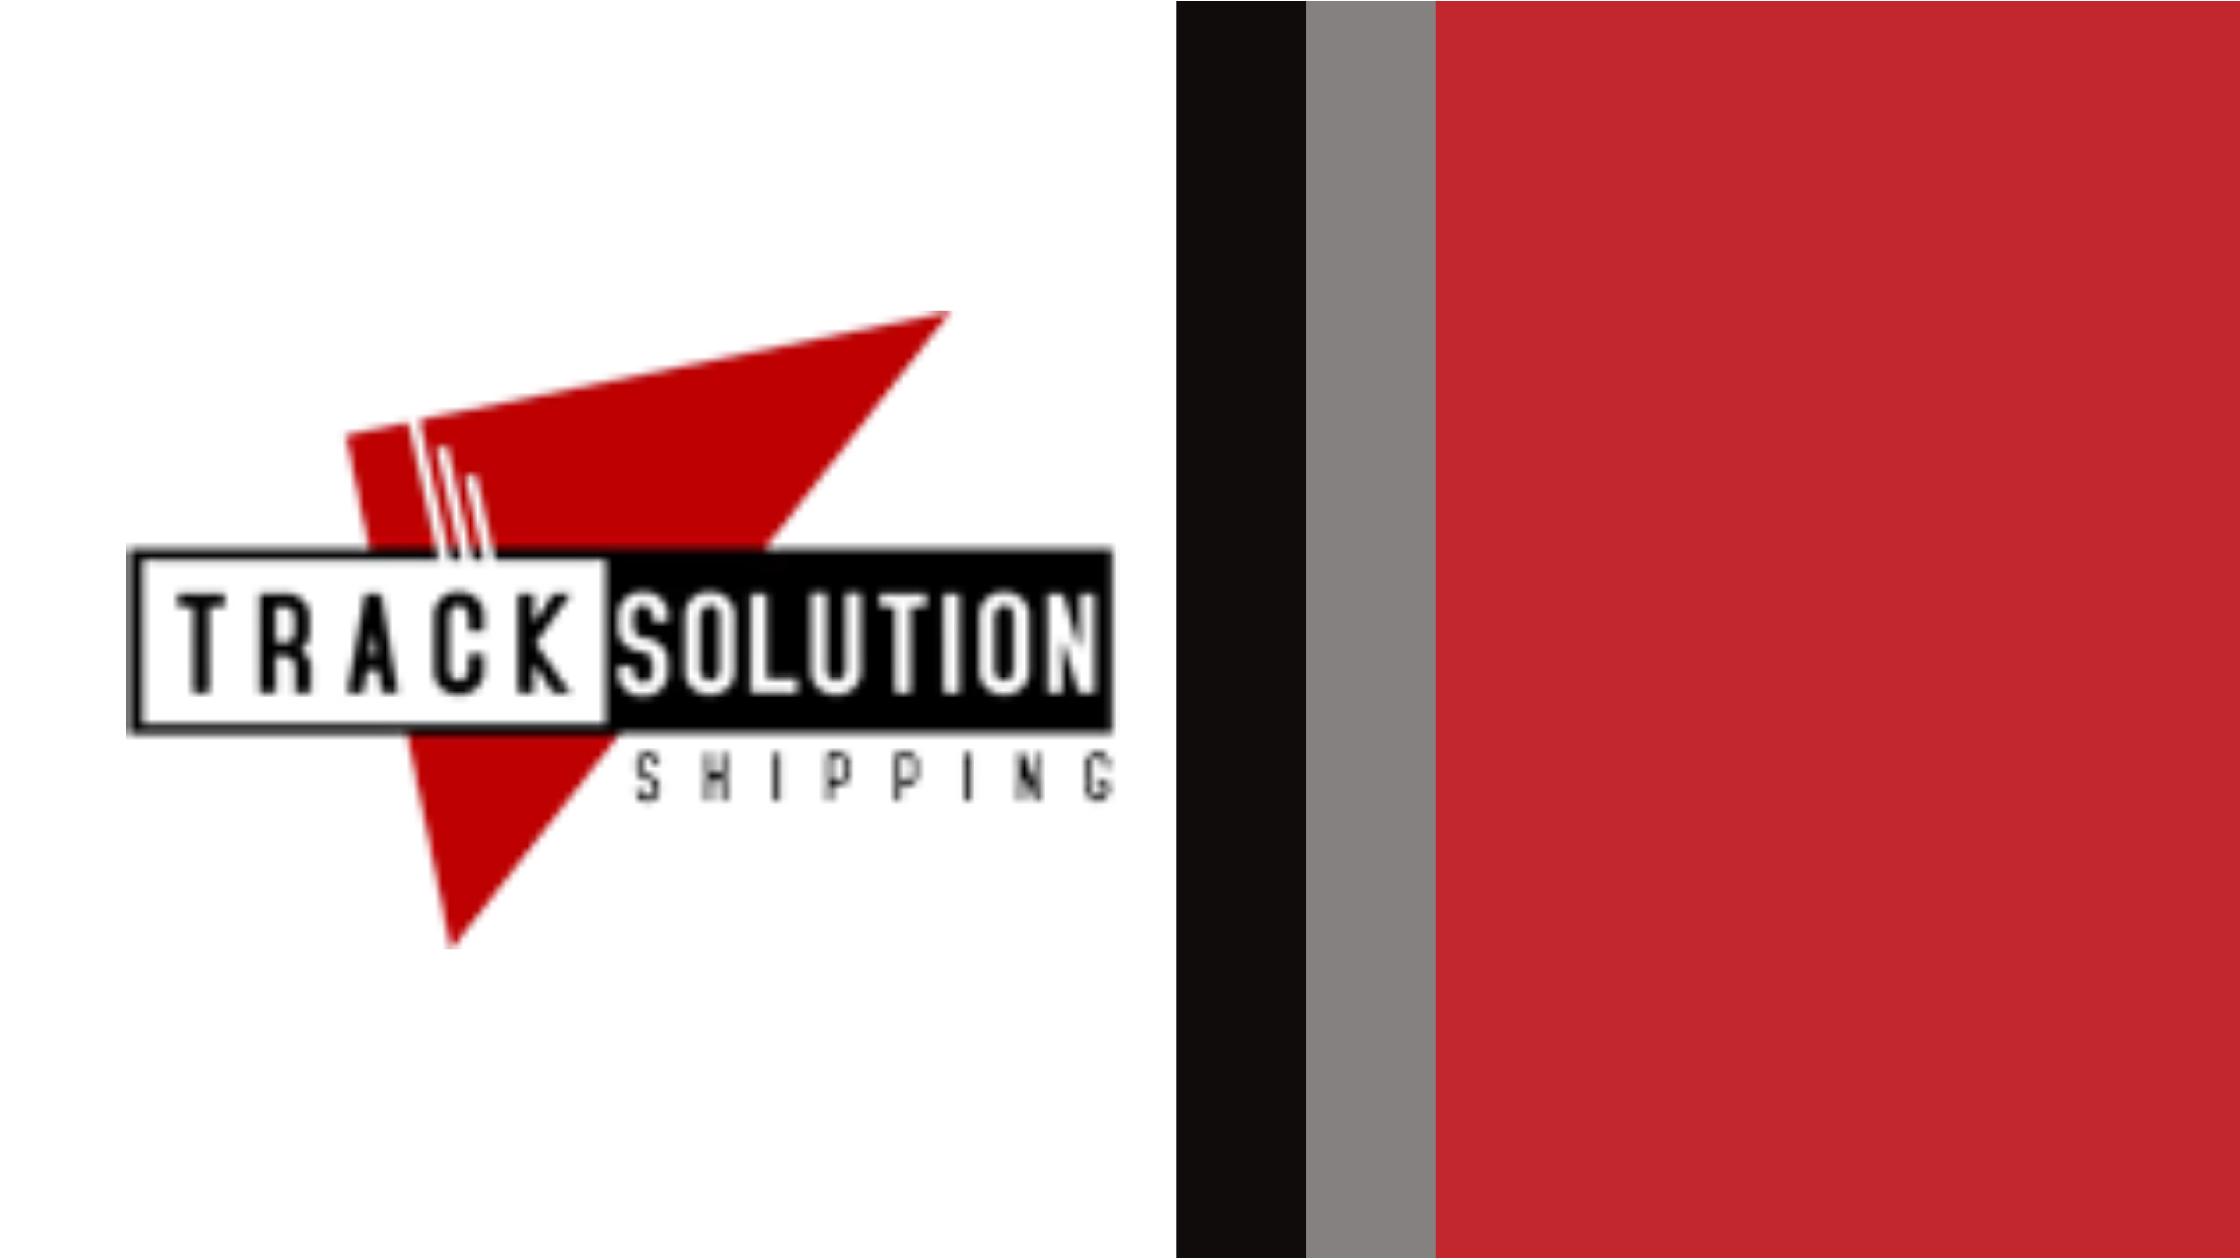 Track Solution Shipping